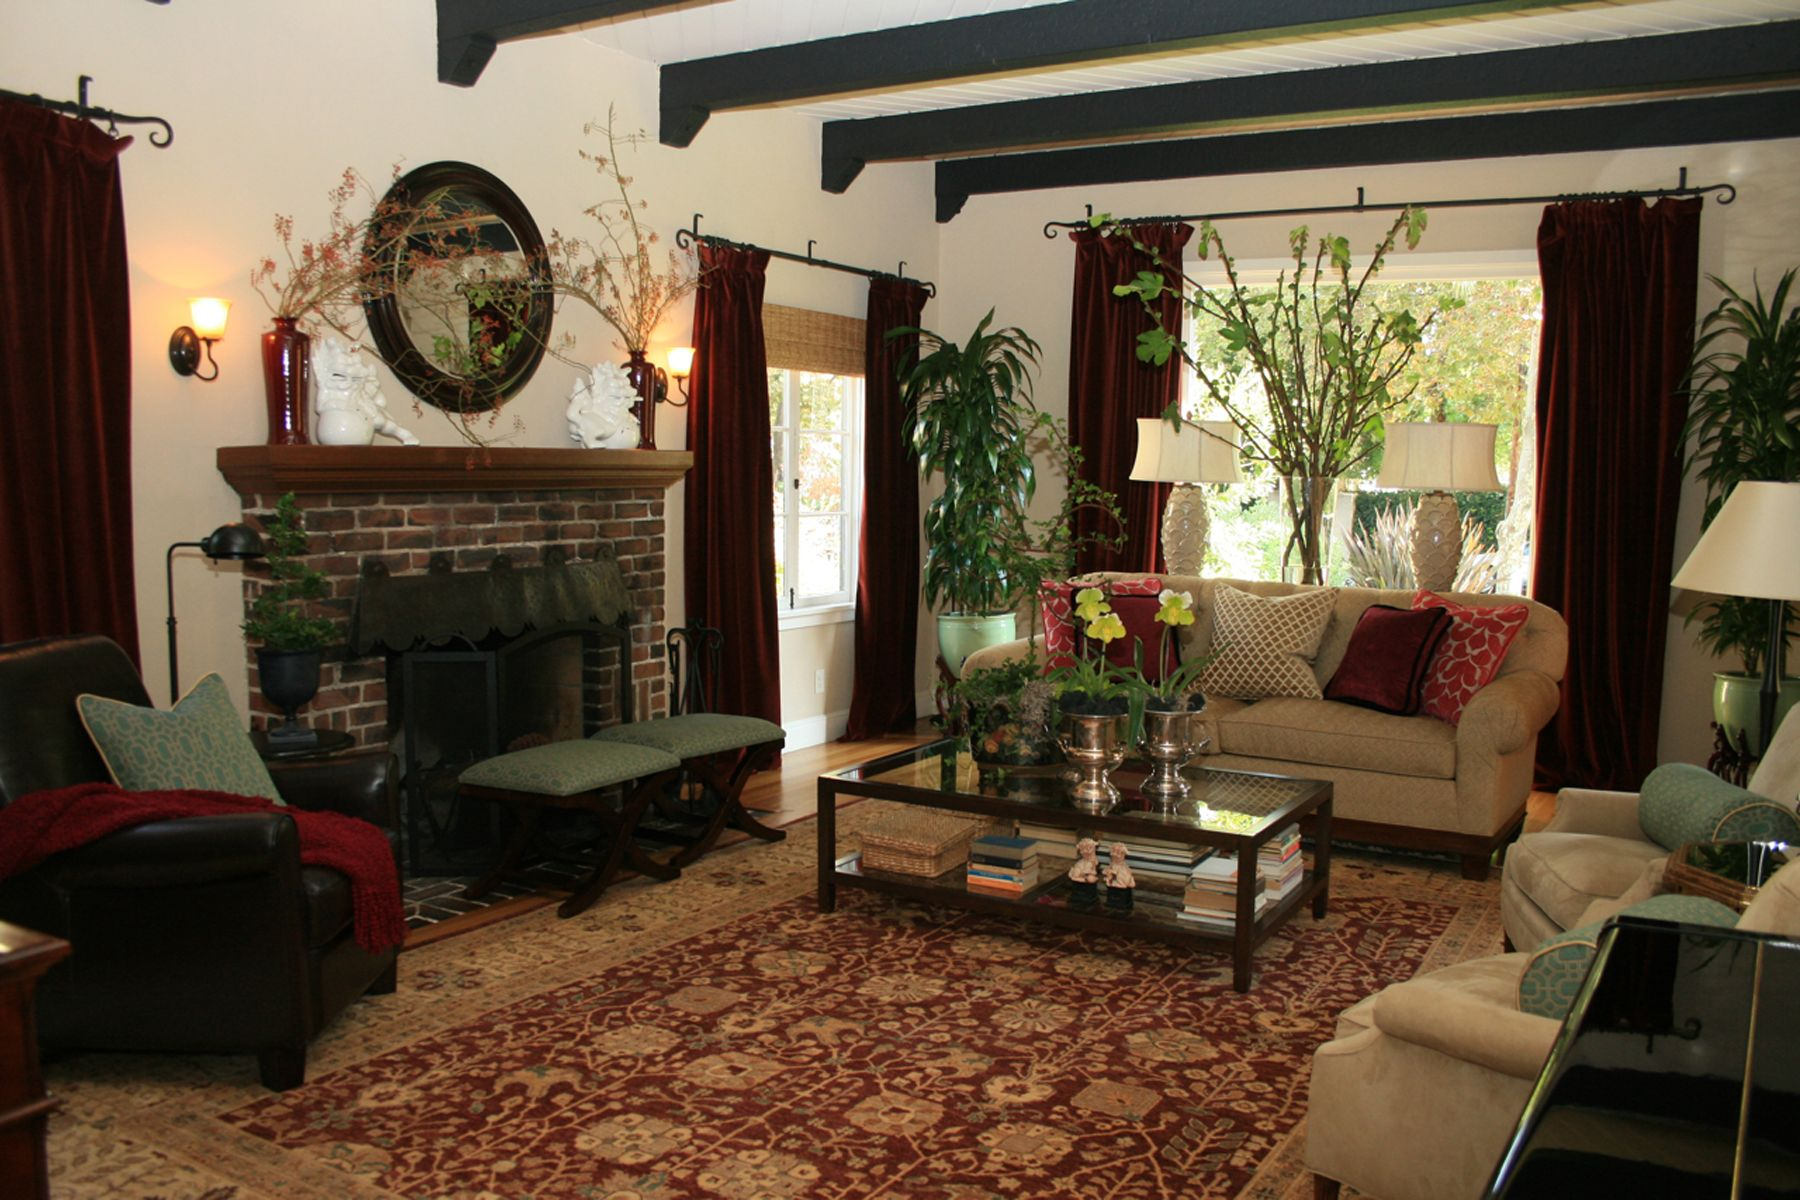 Living Room In Spanish Plans Spanish Style Homes  Style Living Room Design Interior Ideas .